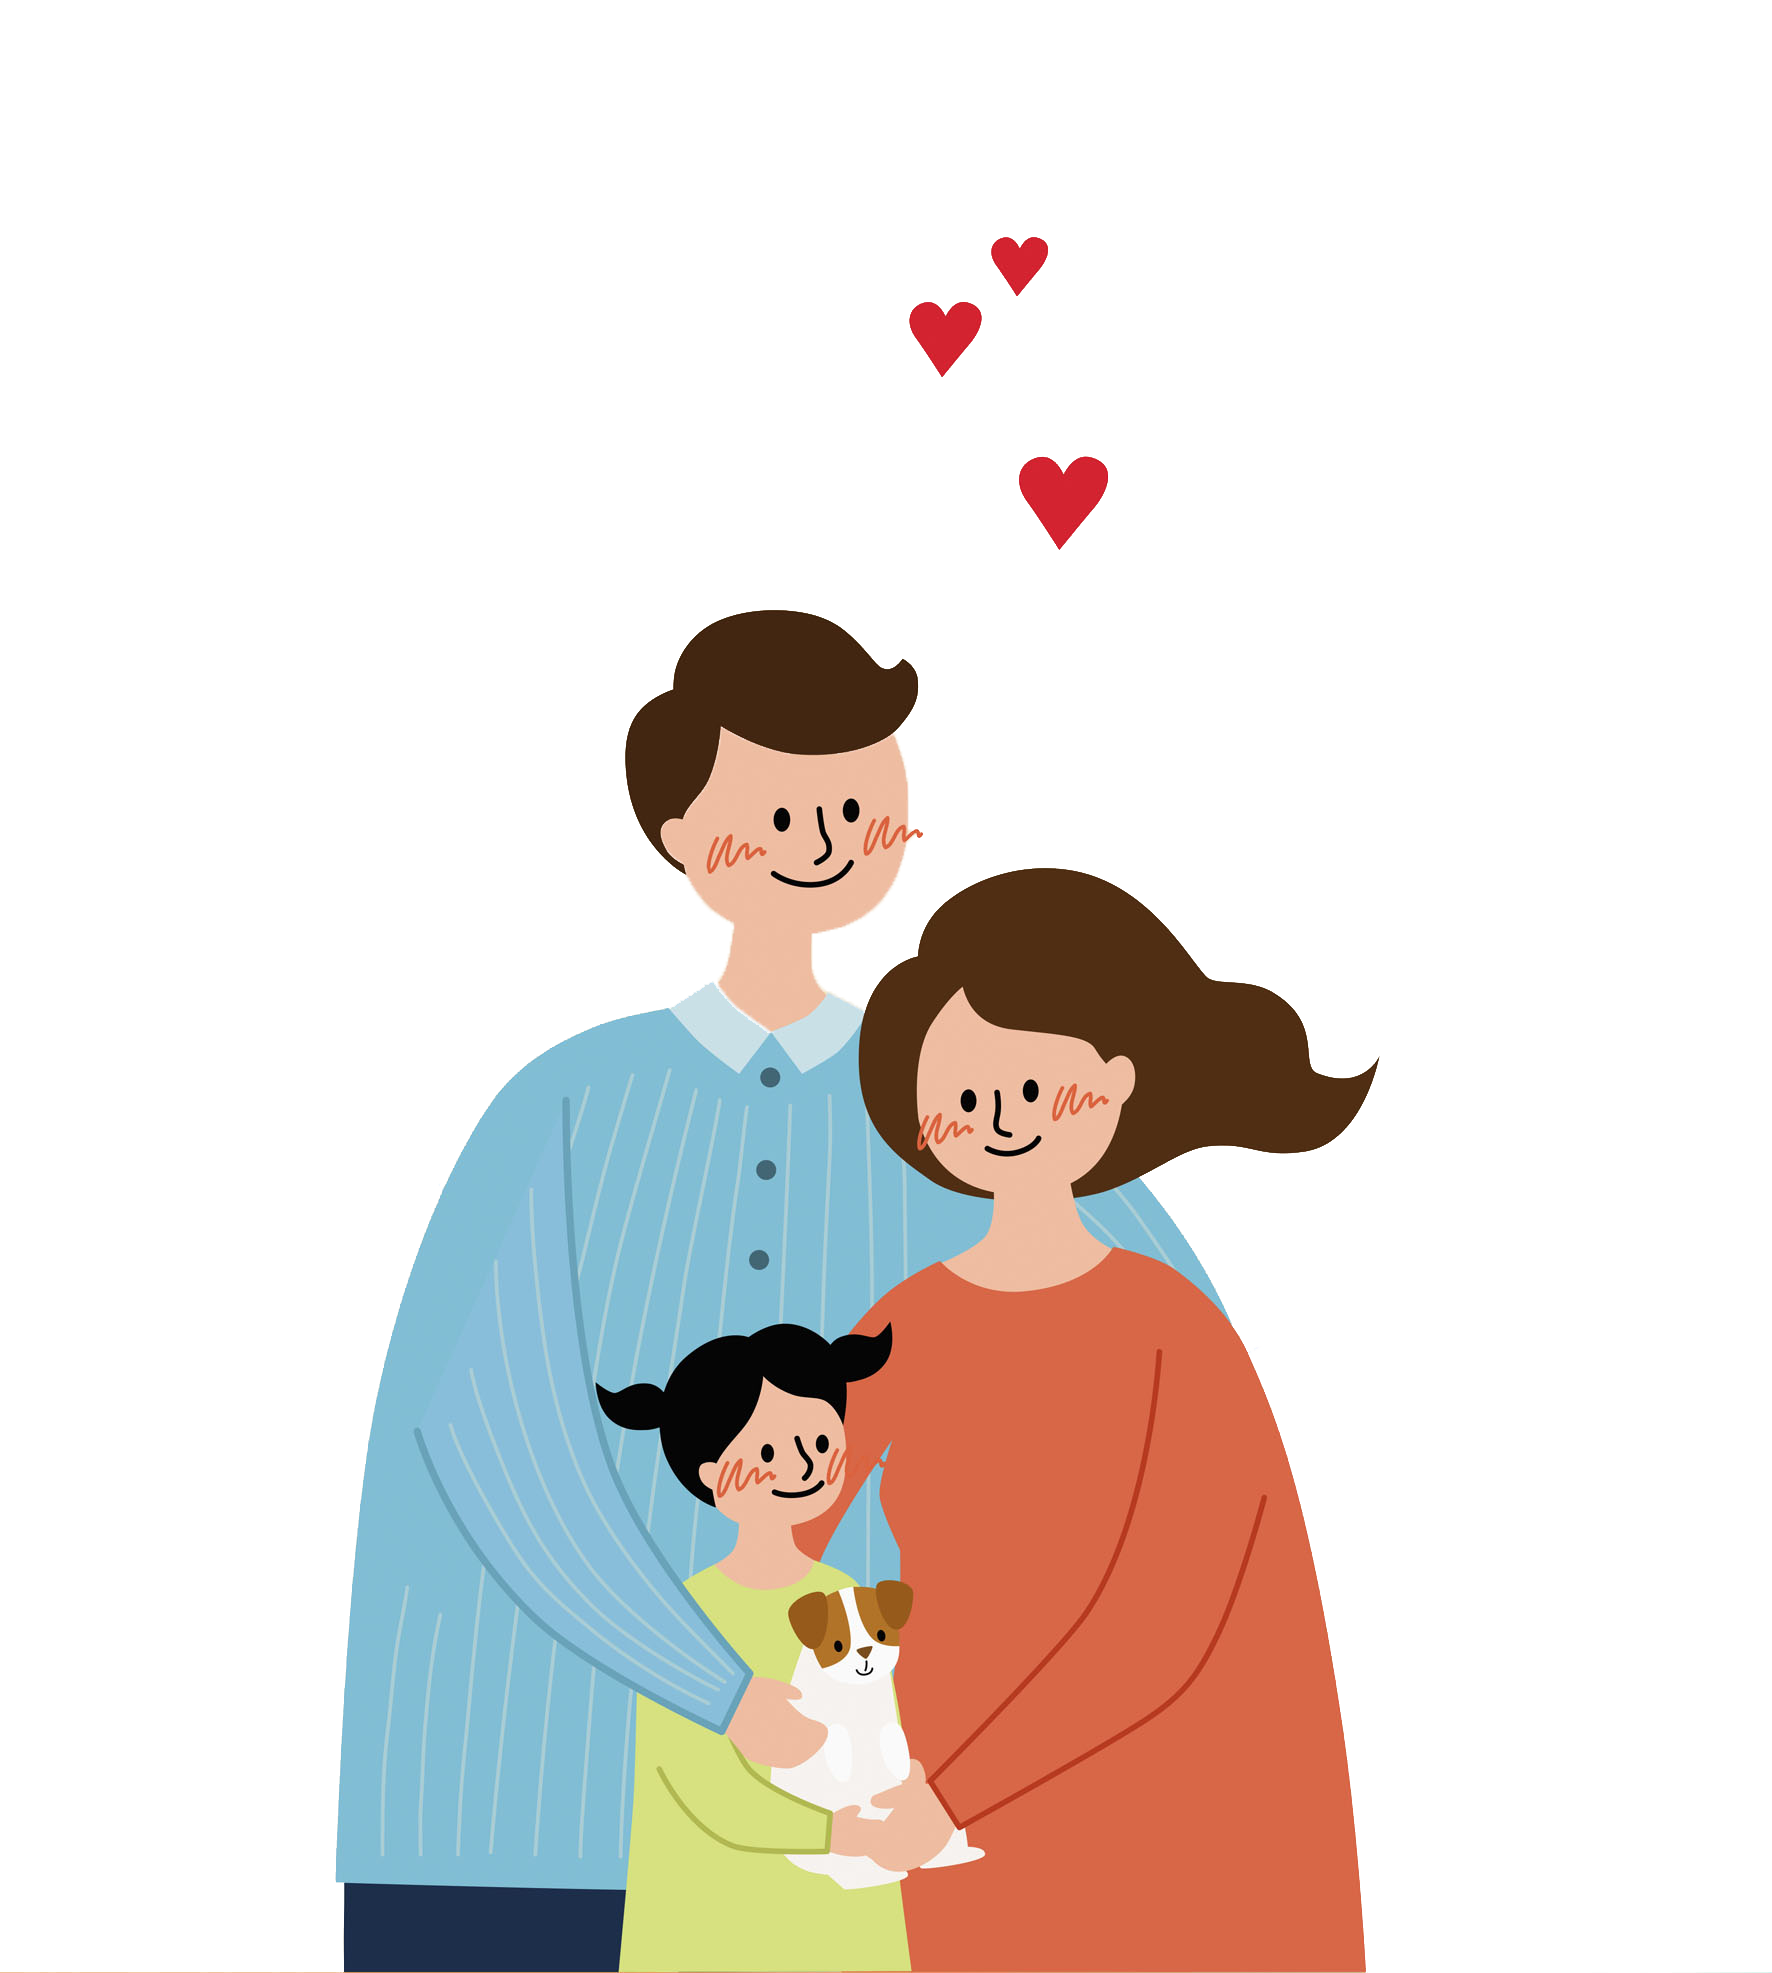 Emotions clipart emotional person. Family clip art happy